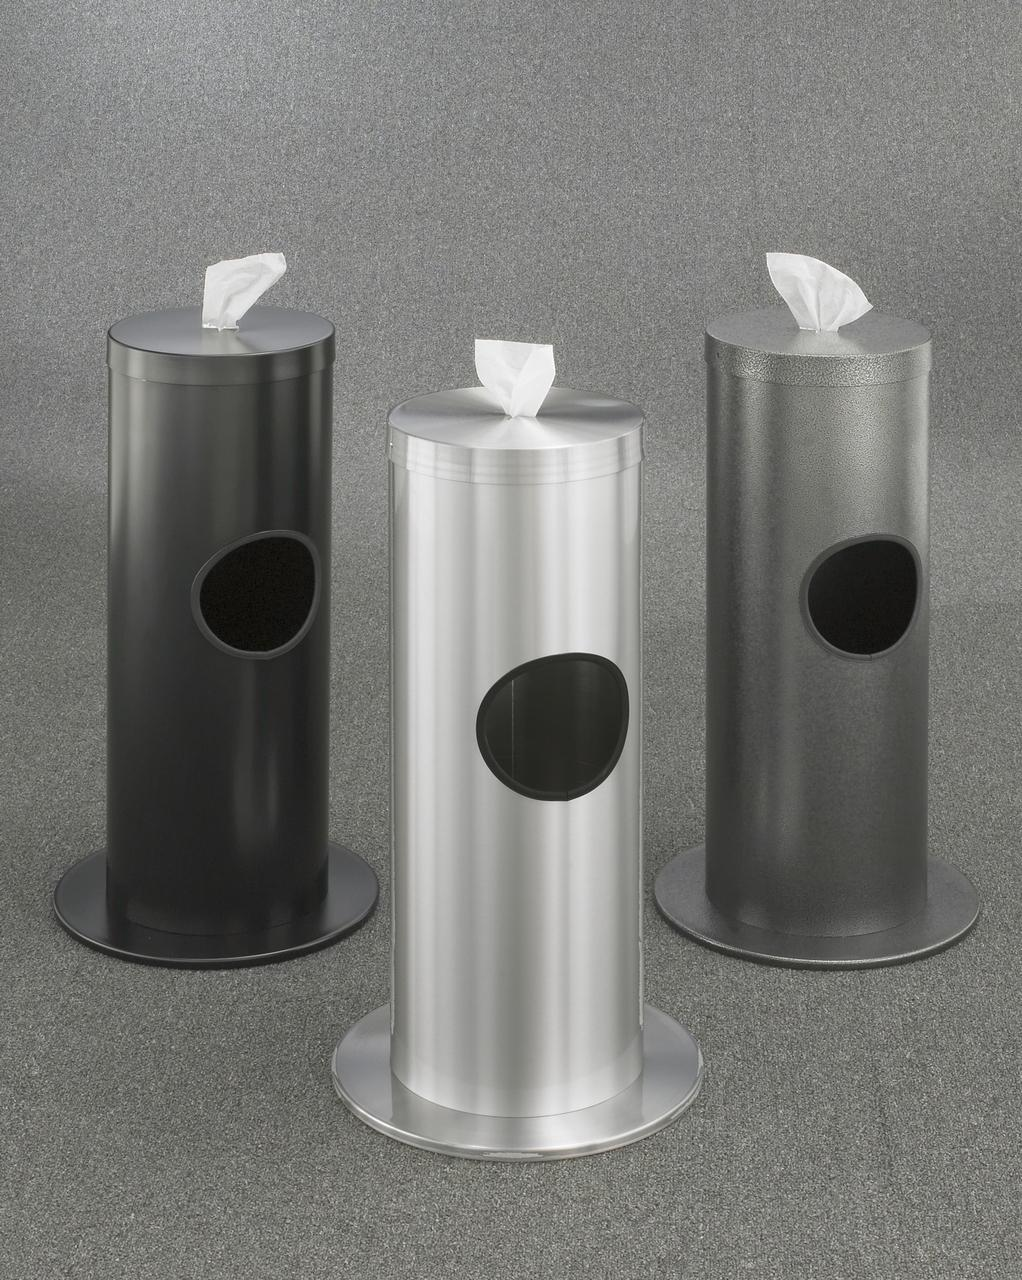 How to select the right hotel trash can trash cans unlimited - Commercial bathroom waste receptacles ...